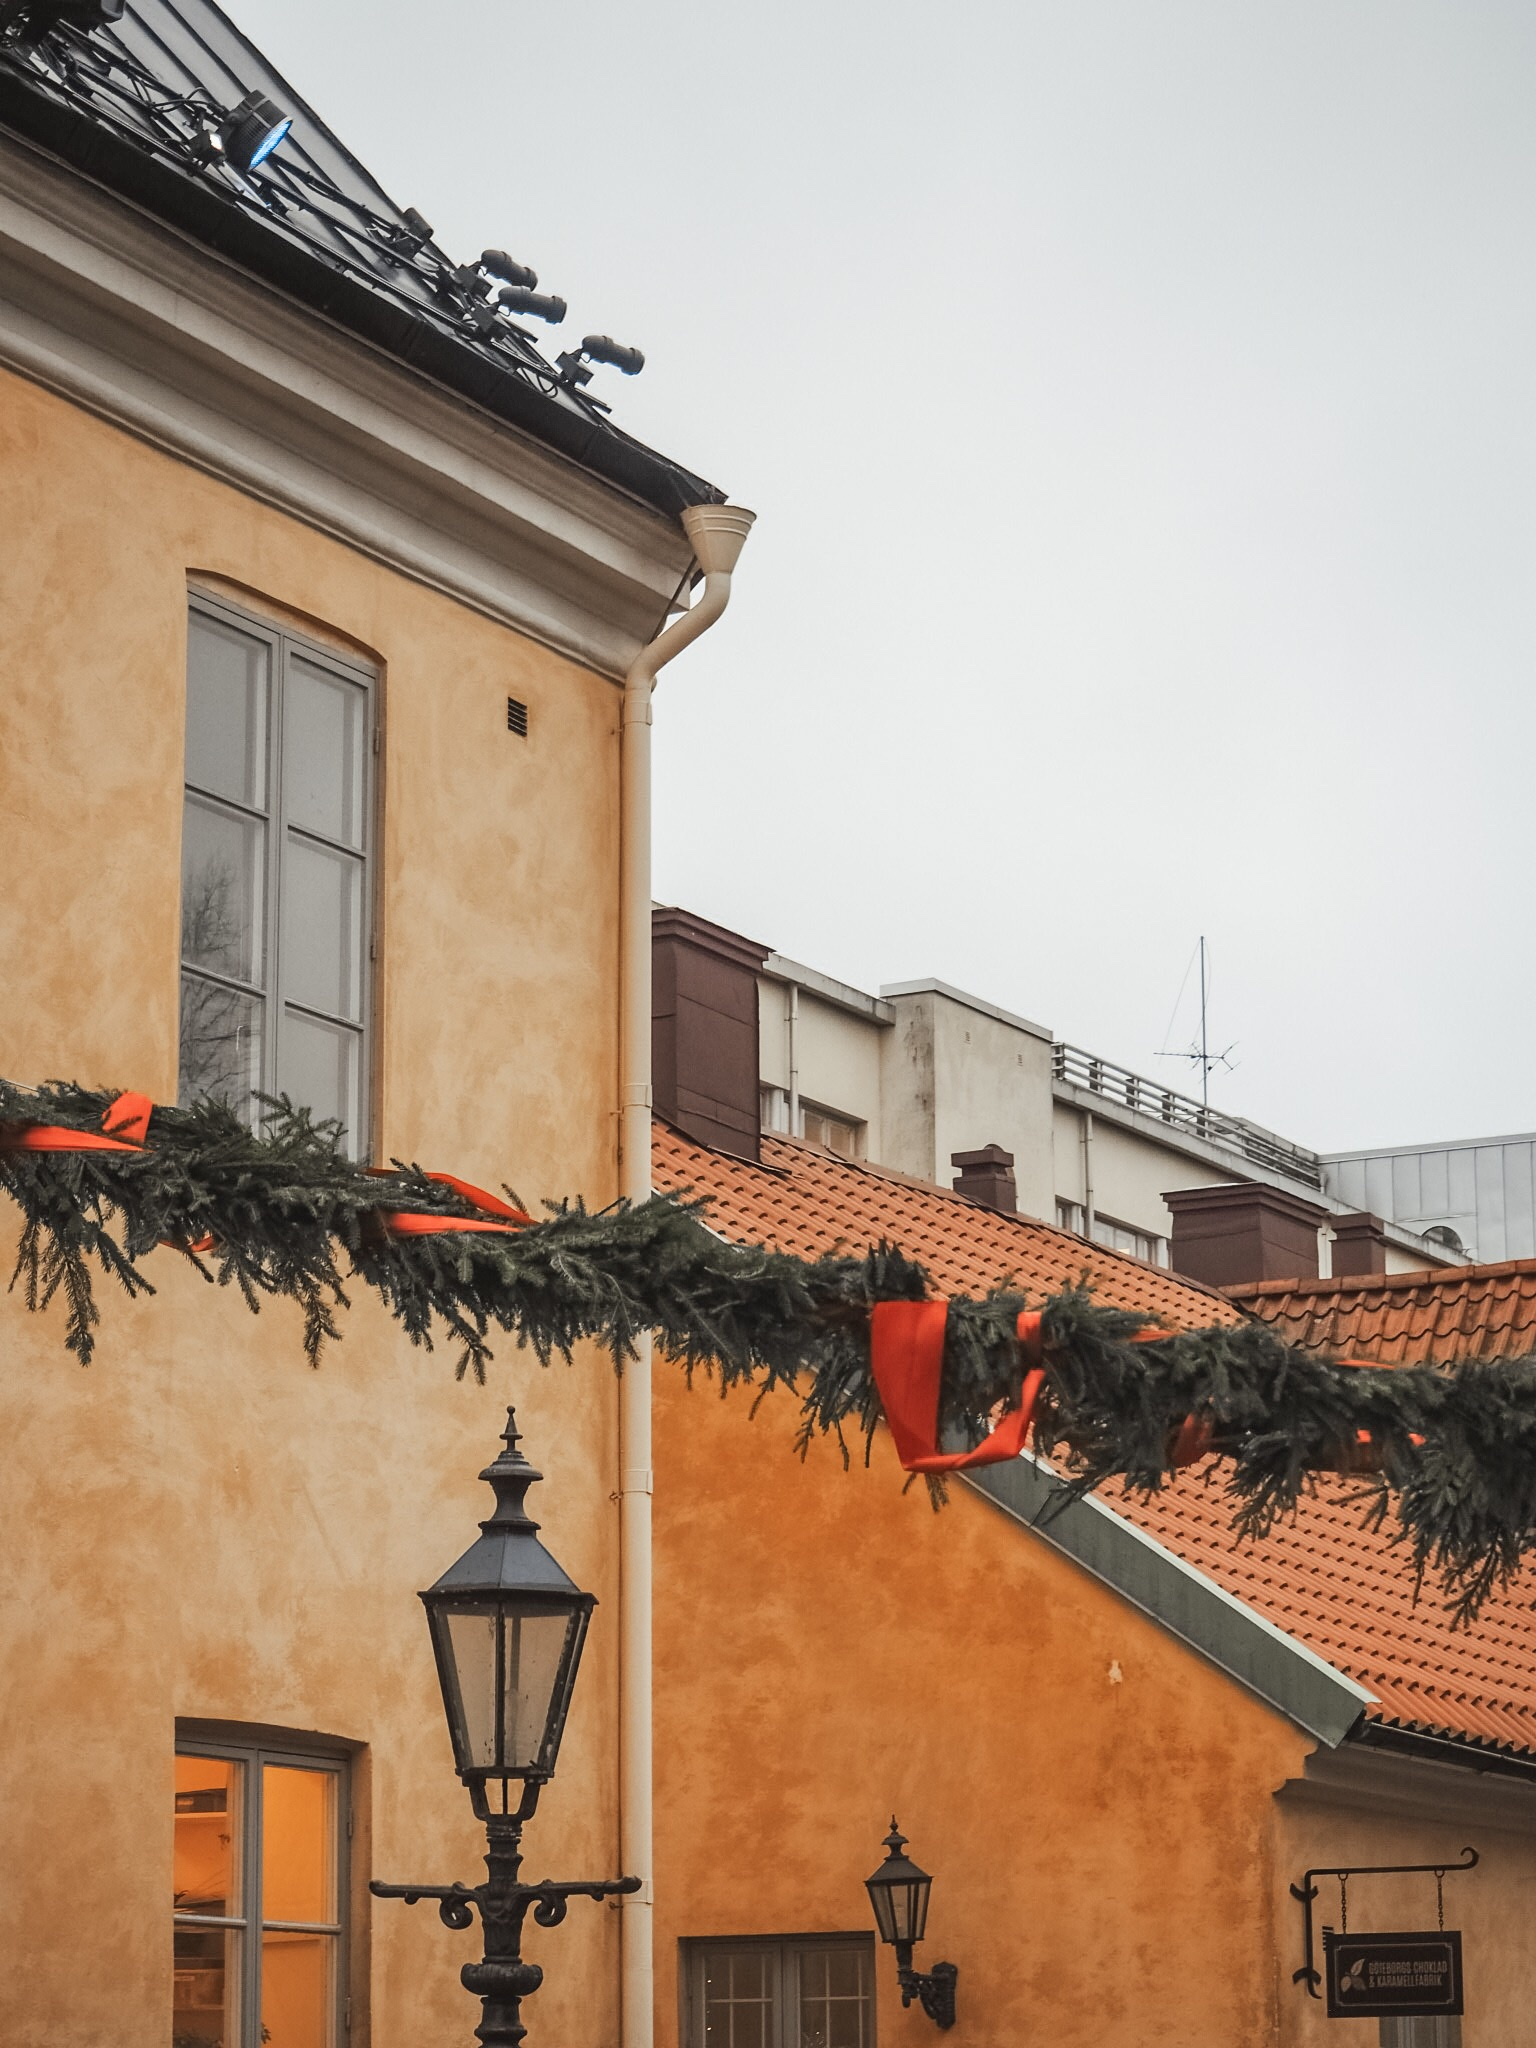 Christmas Market in Kronhusbodarna, Gothenburg